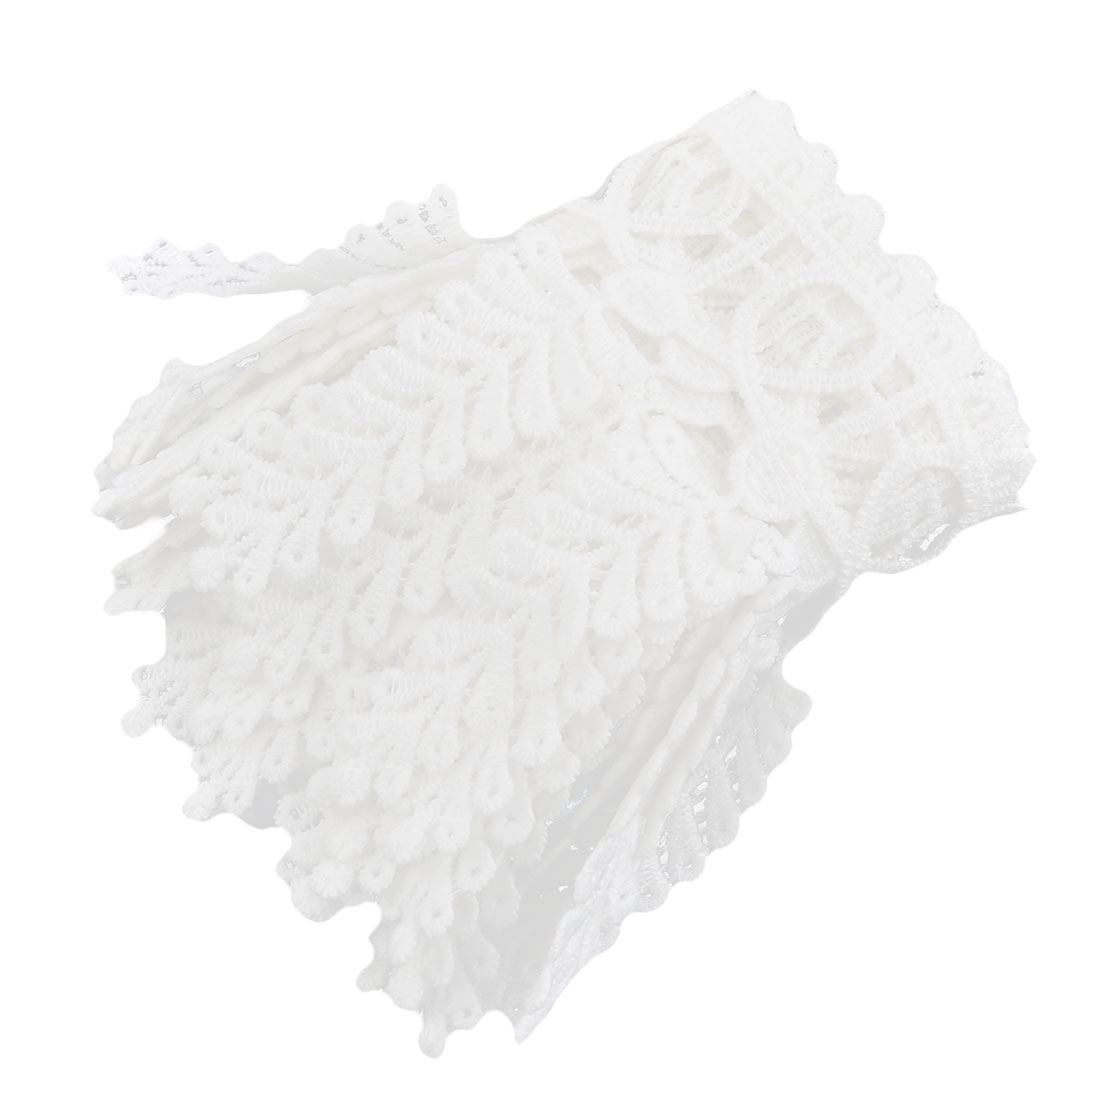 Polyester Leaves Decor DIY Bridal Dress Sewing Lace Trim Applique 3.5 Inches Width